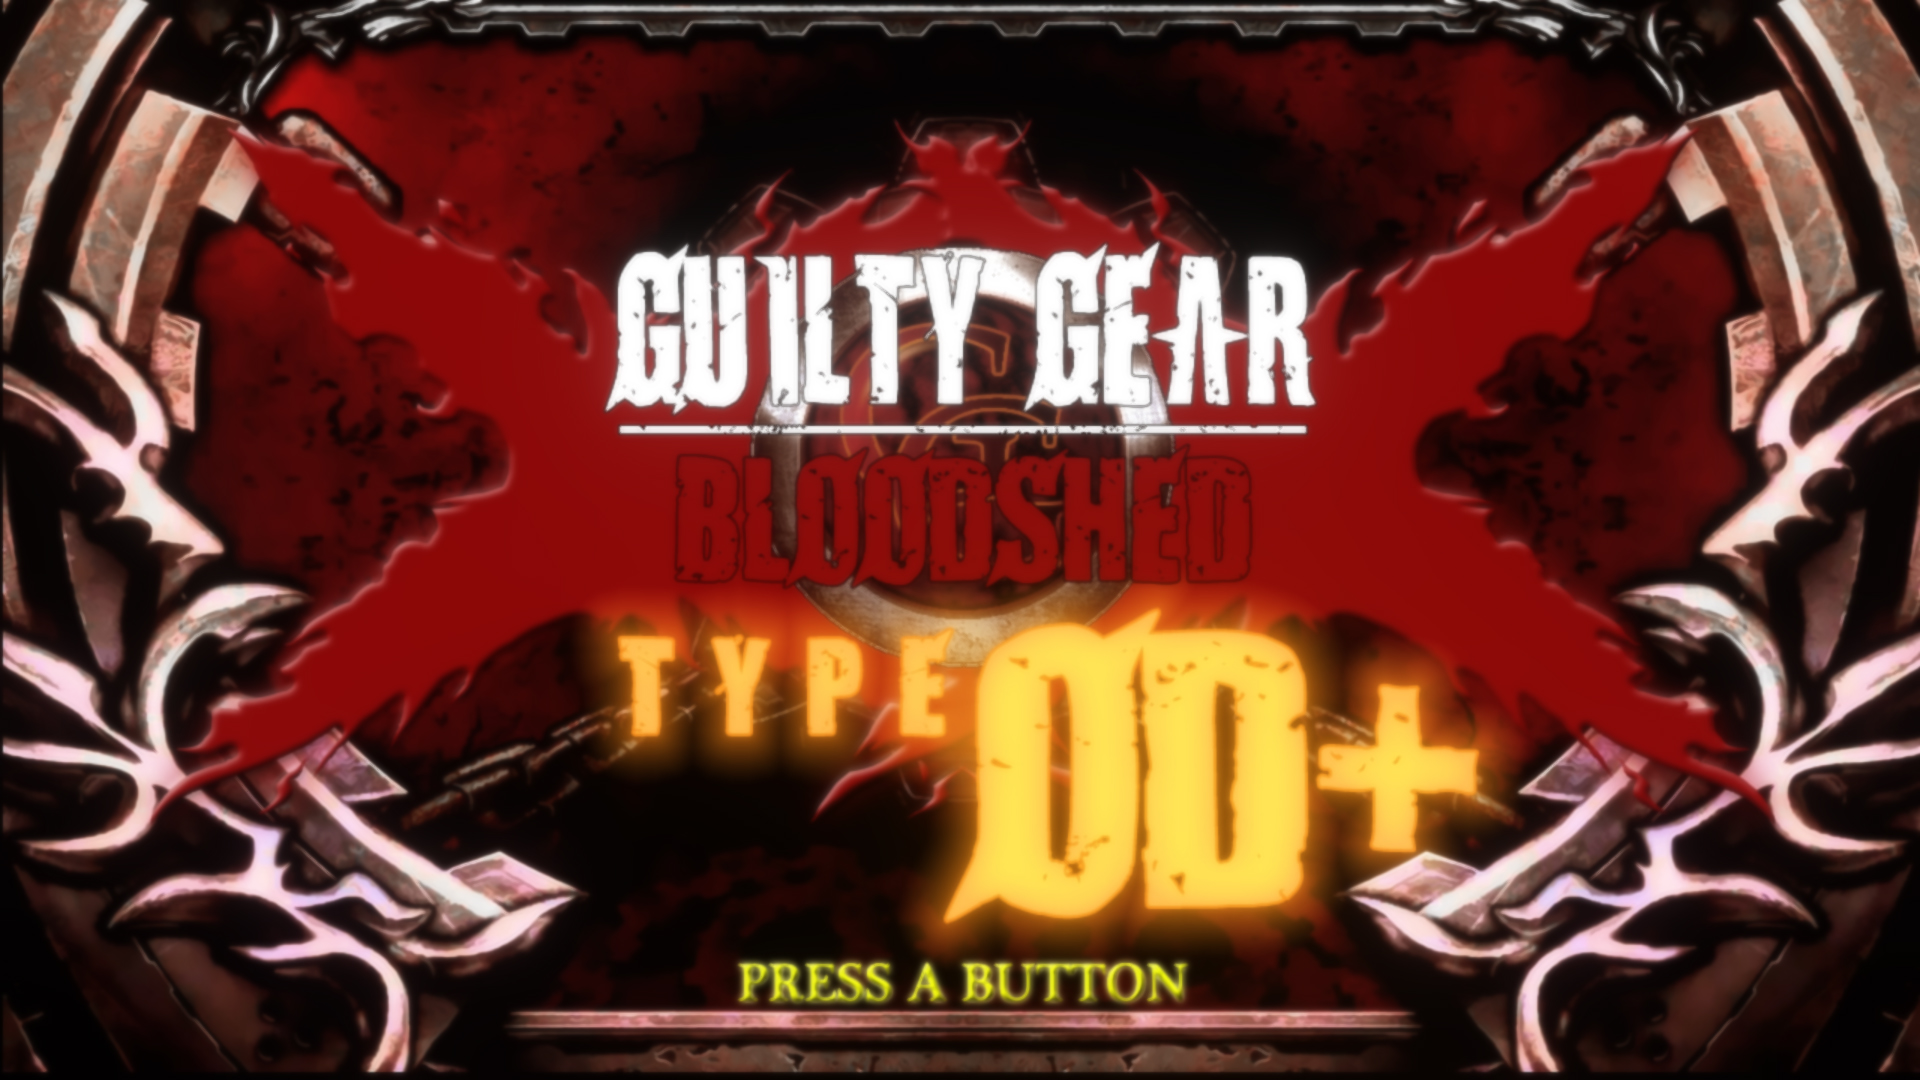 Guilty Gear XX Bloodshed Type OD+ By VGames Updated (21.08.18) Mugen_2018-08-18_16-23-44